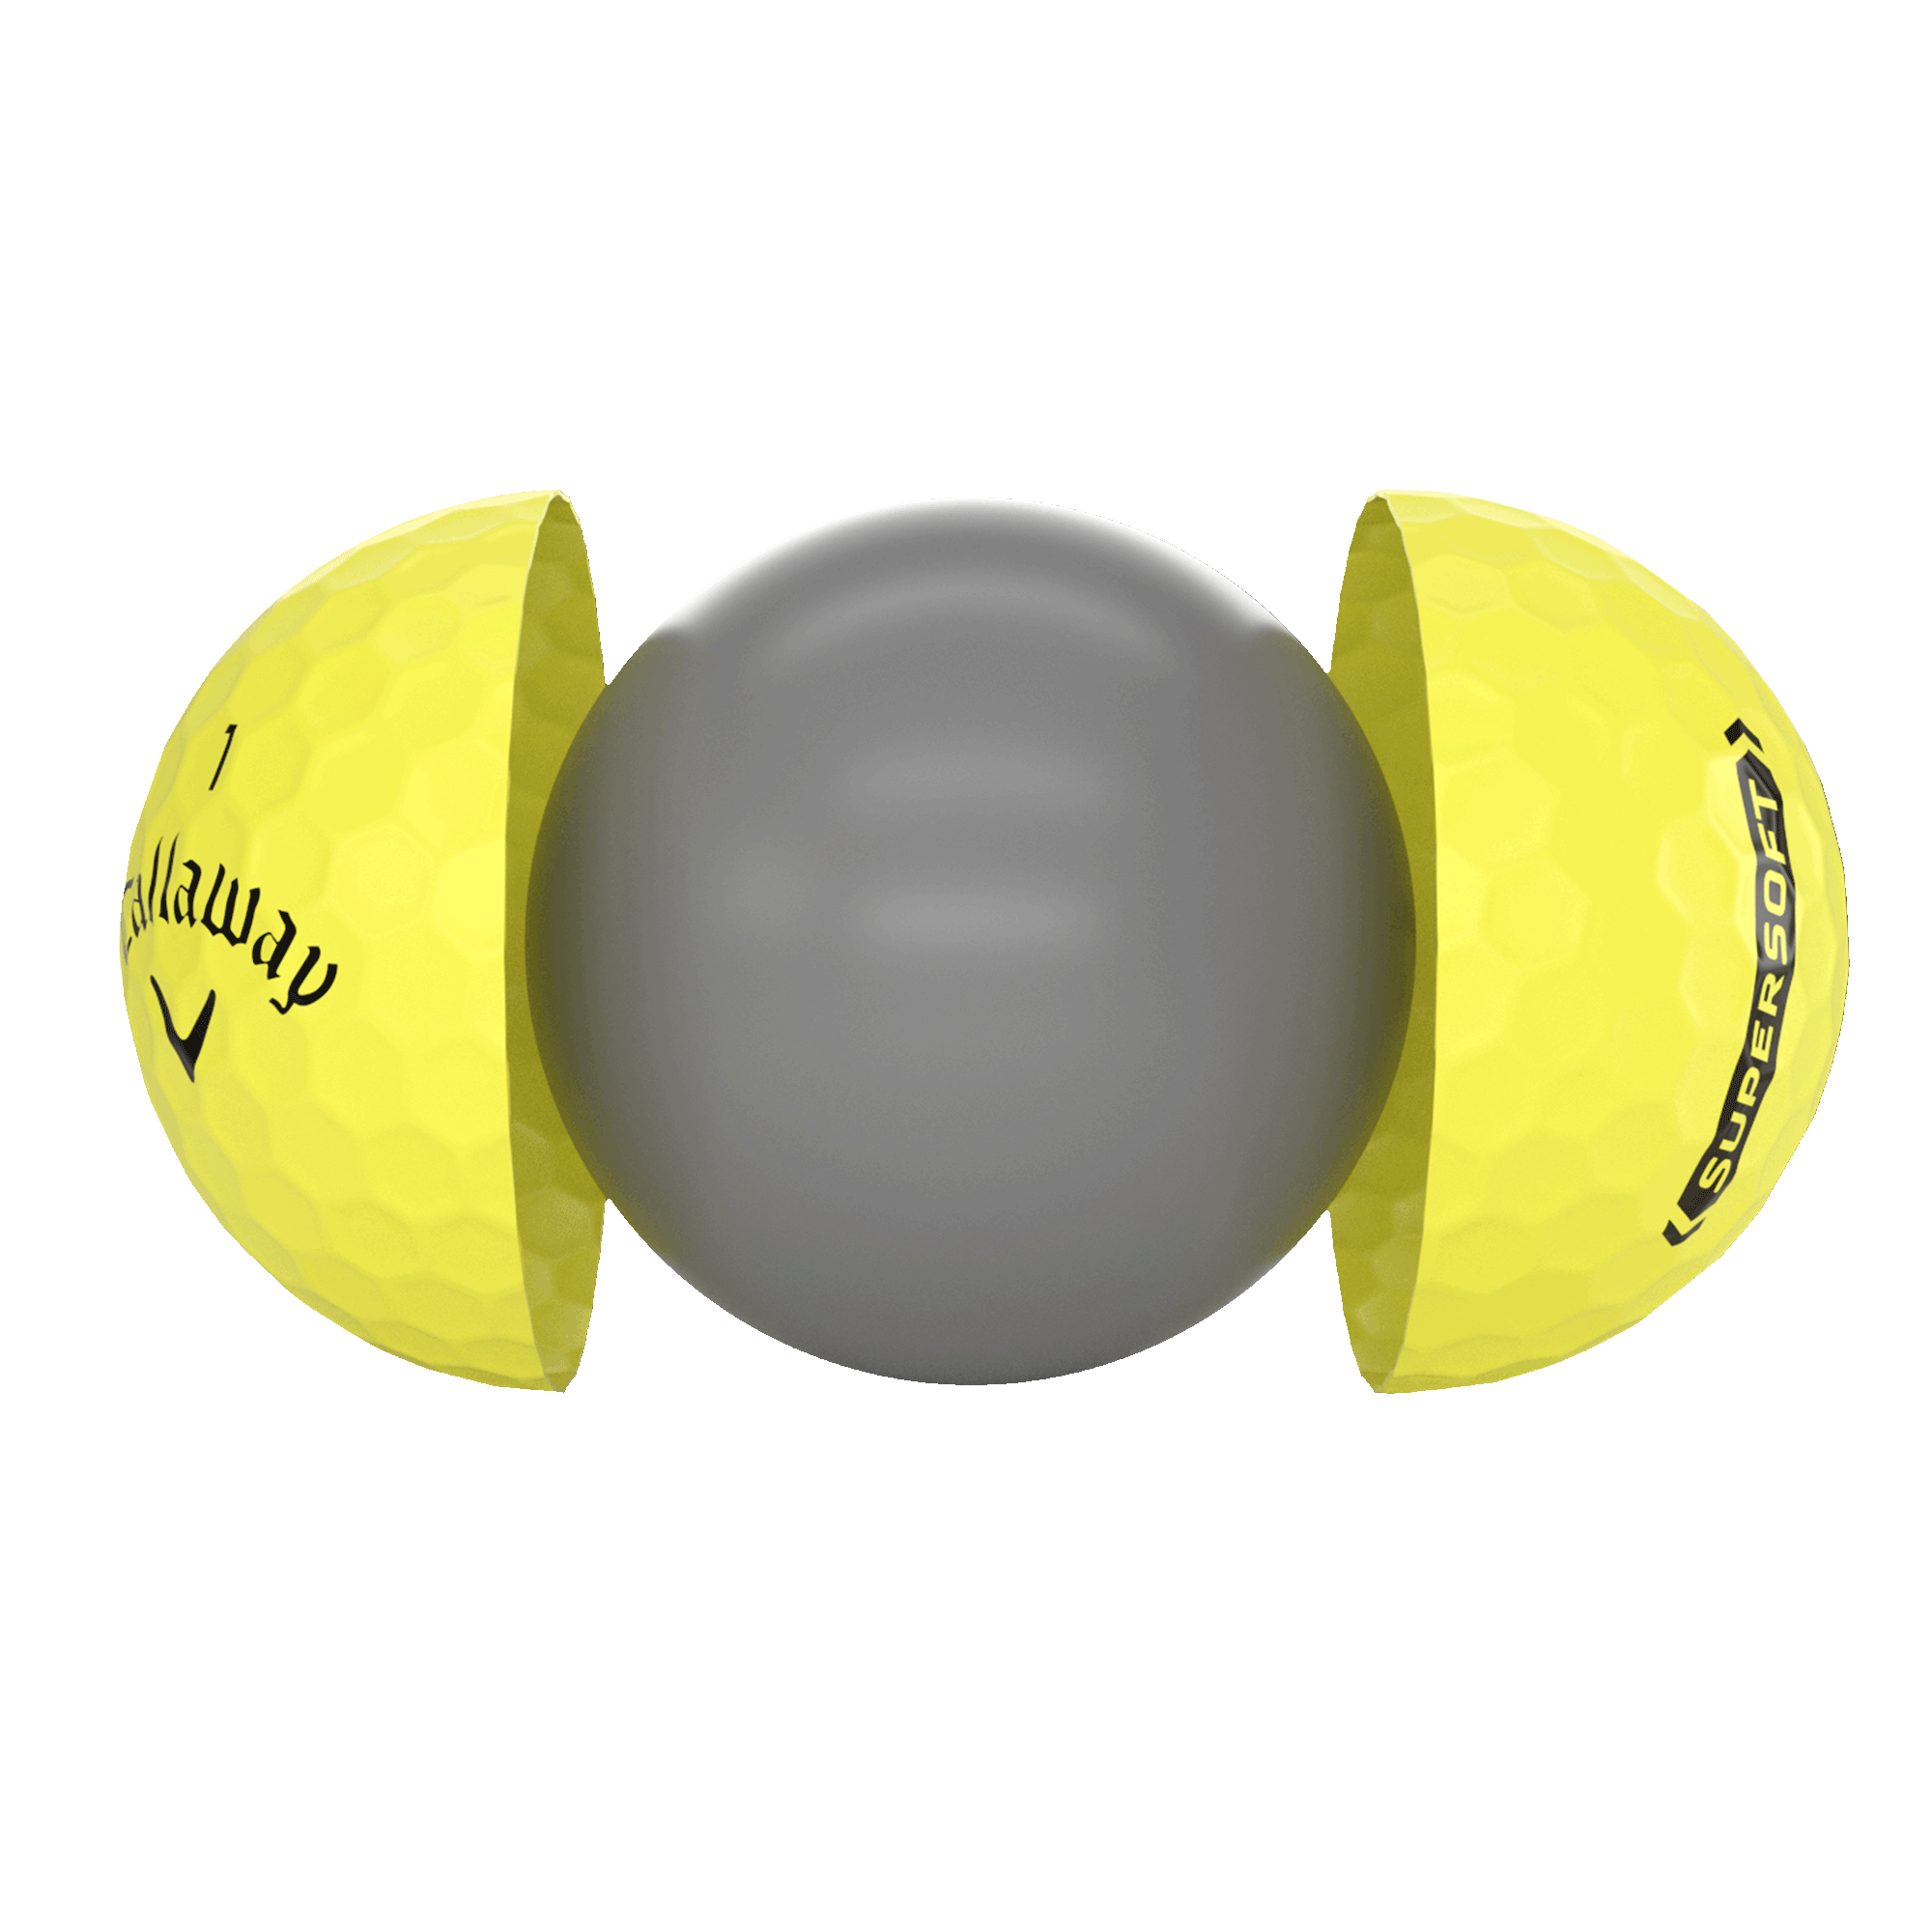 Introducing Callaway Supersoft Yellow Golf Balls illustration